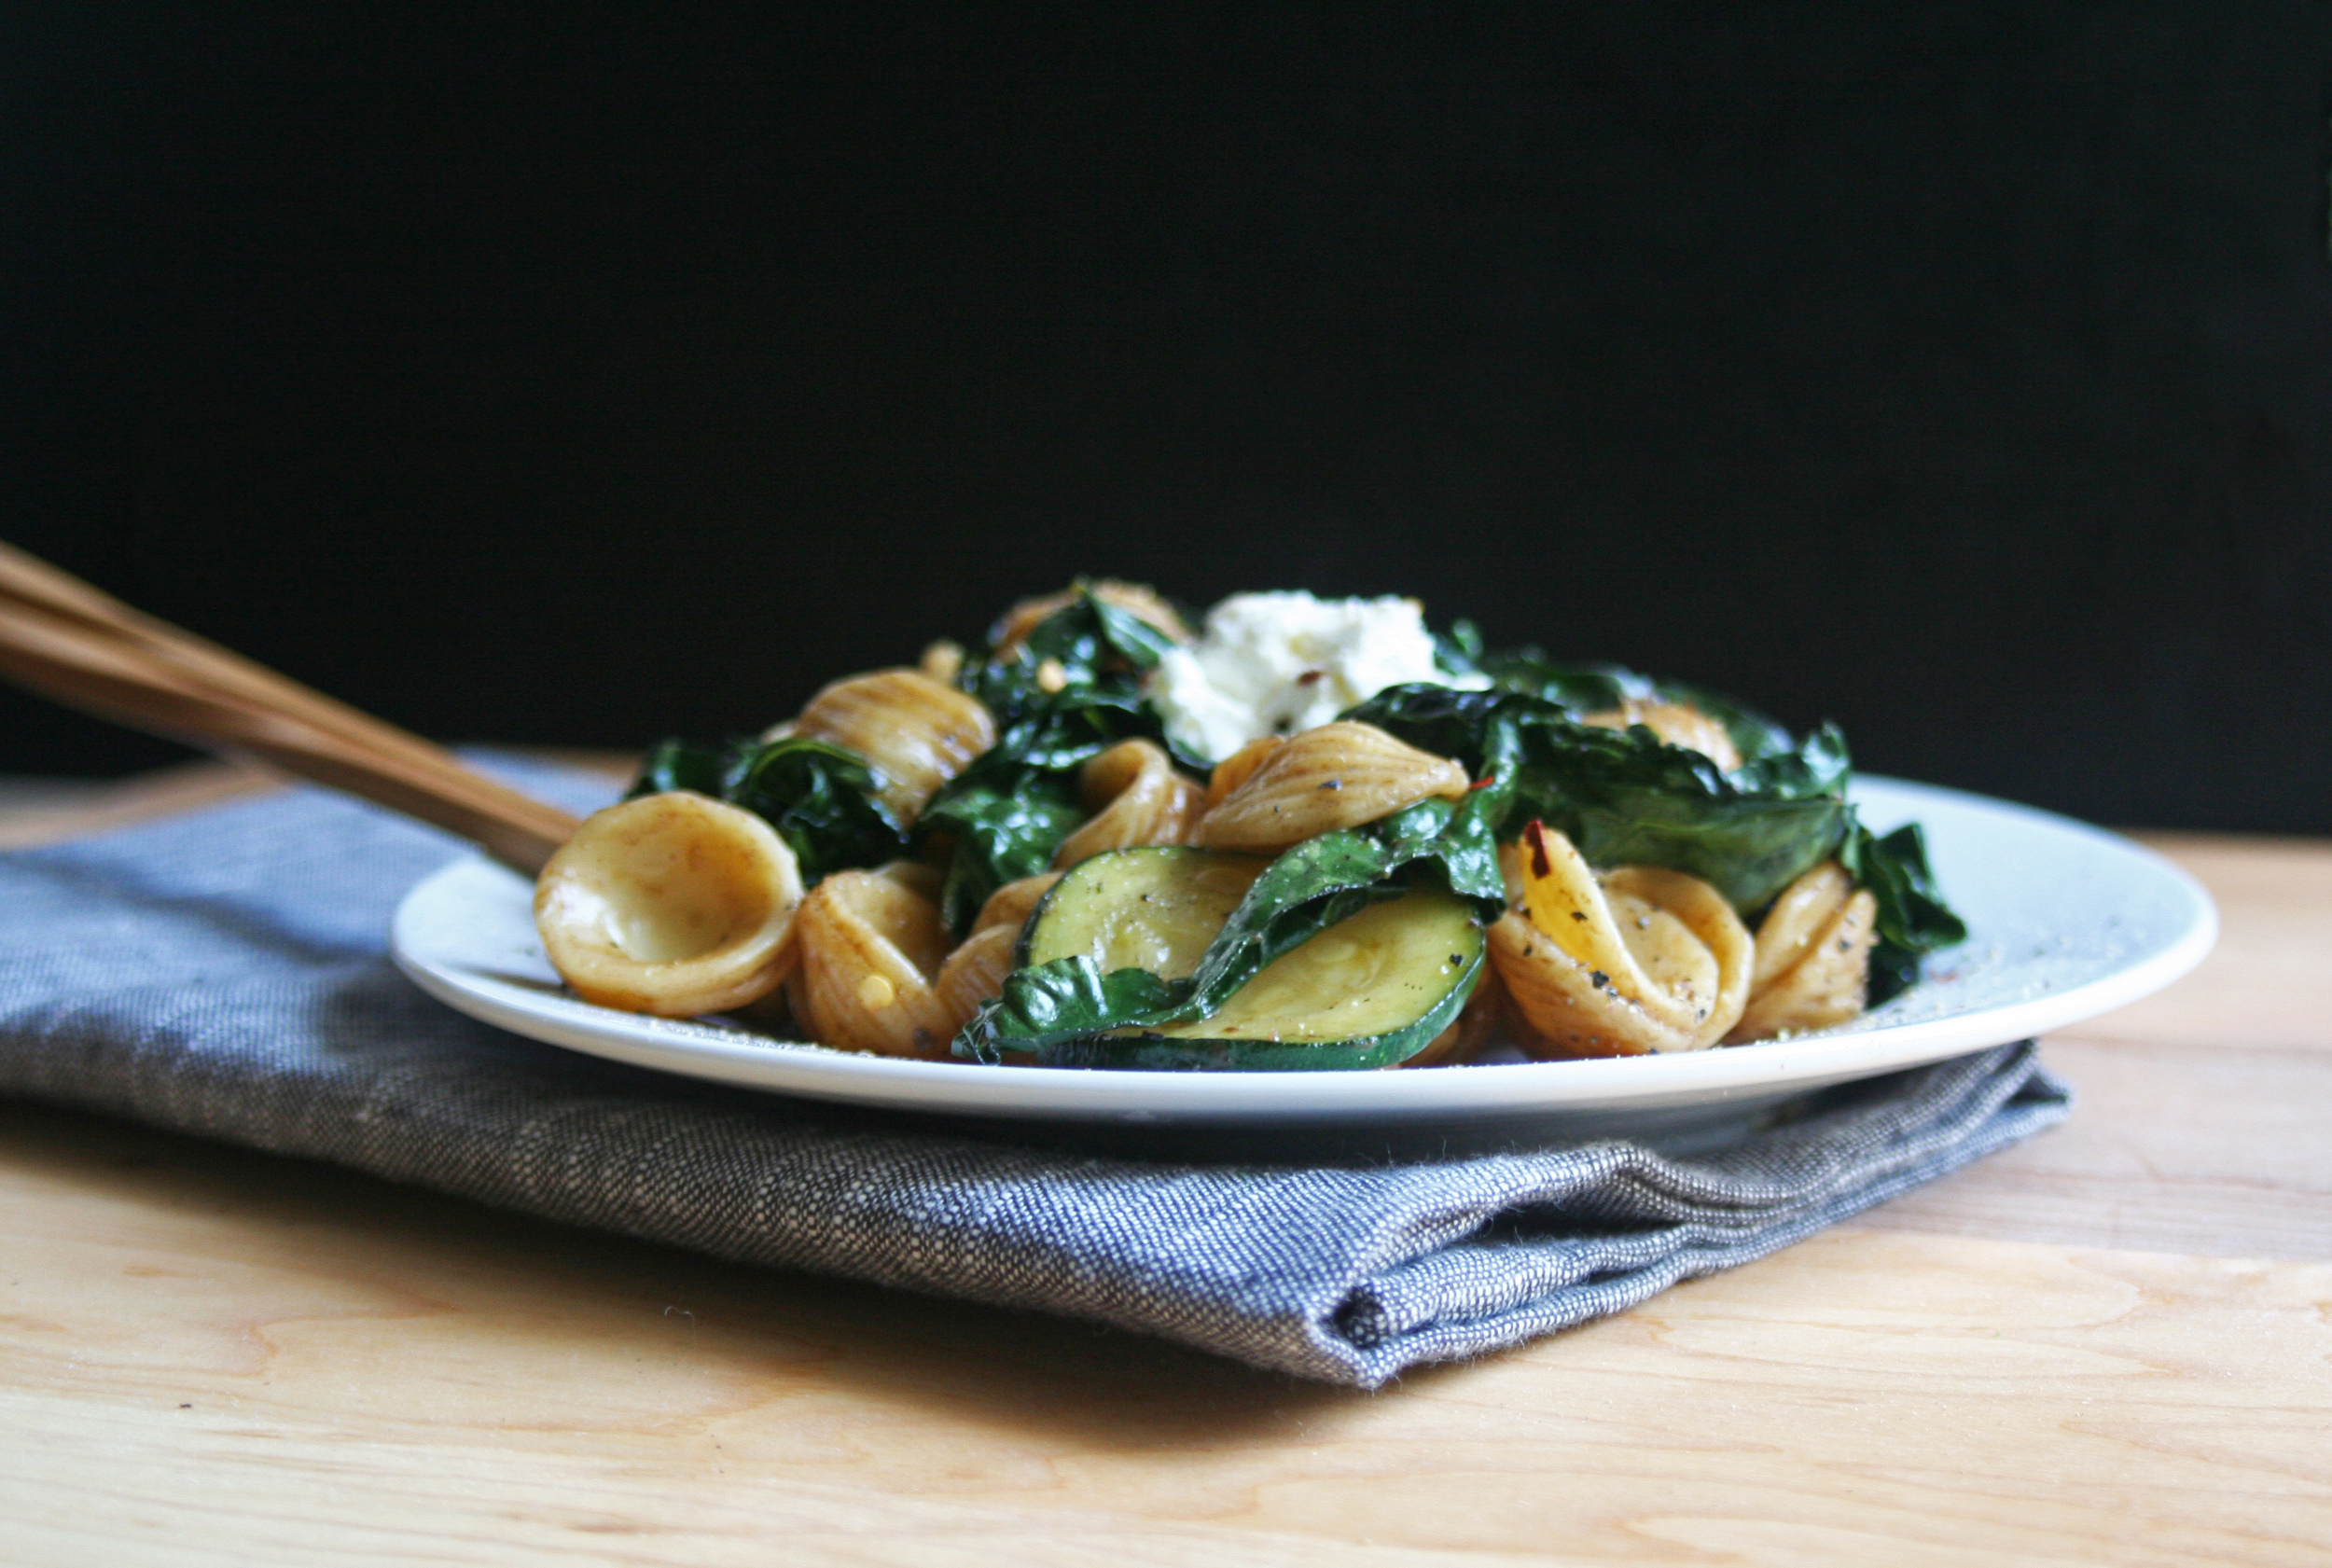 pasta orecchiette with kale and balsamic coconut dressing, mindful eating